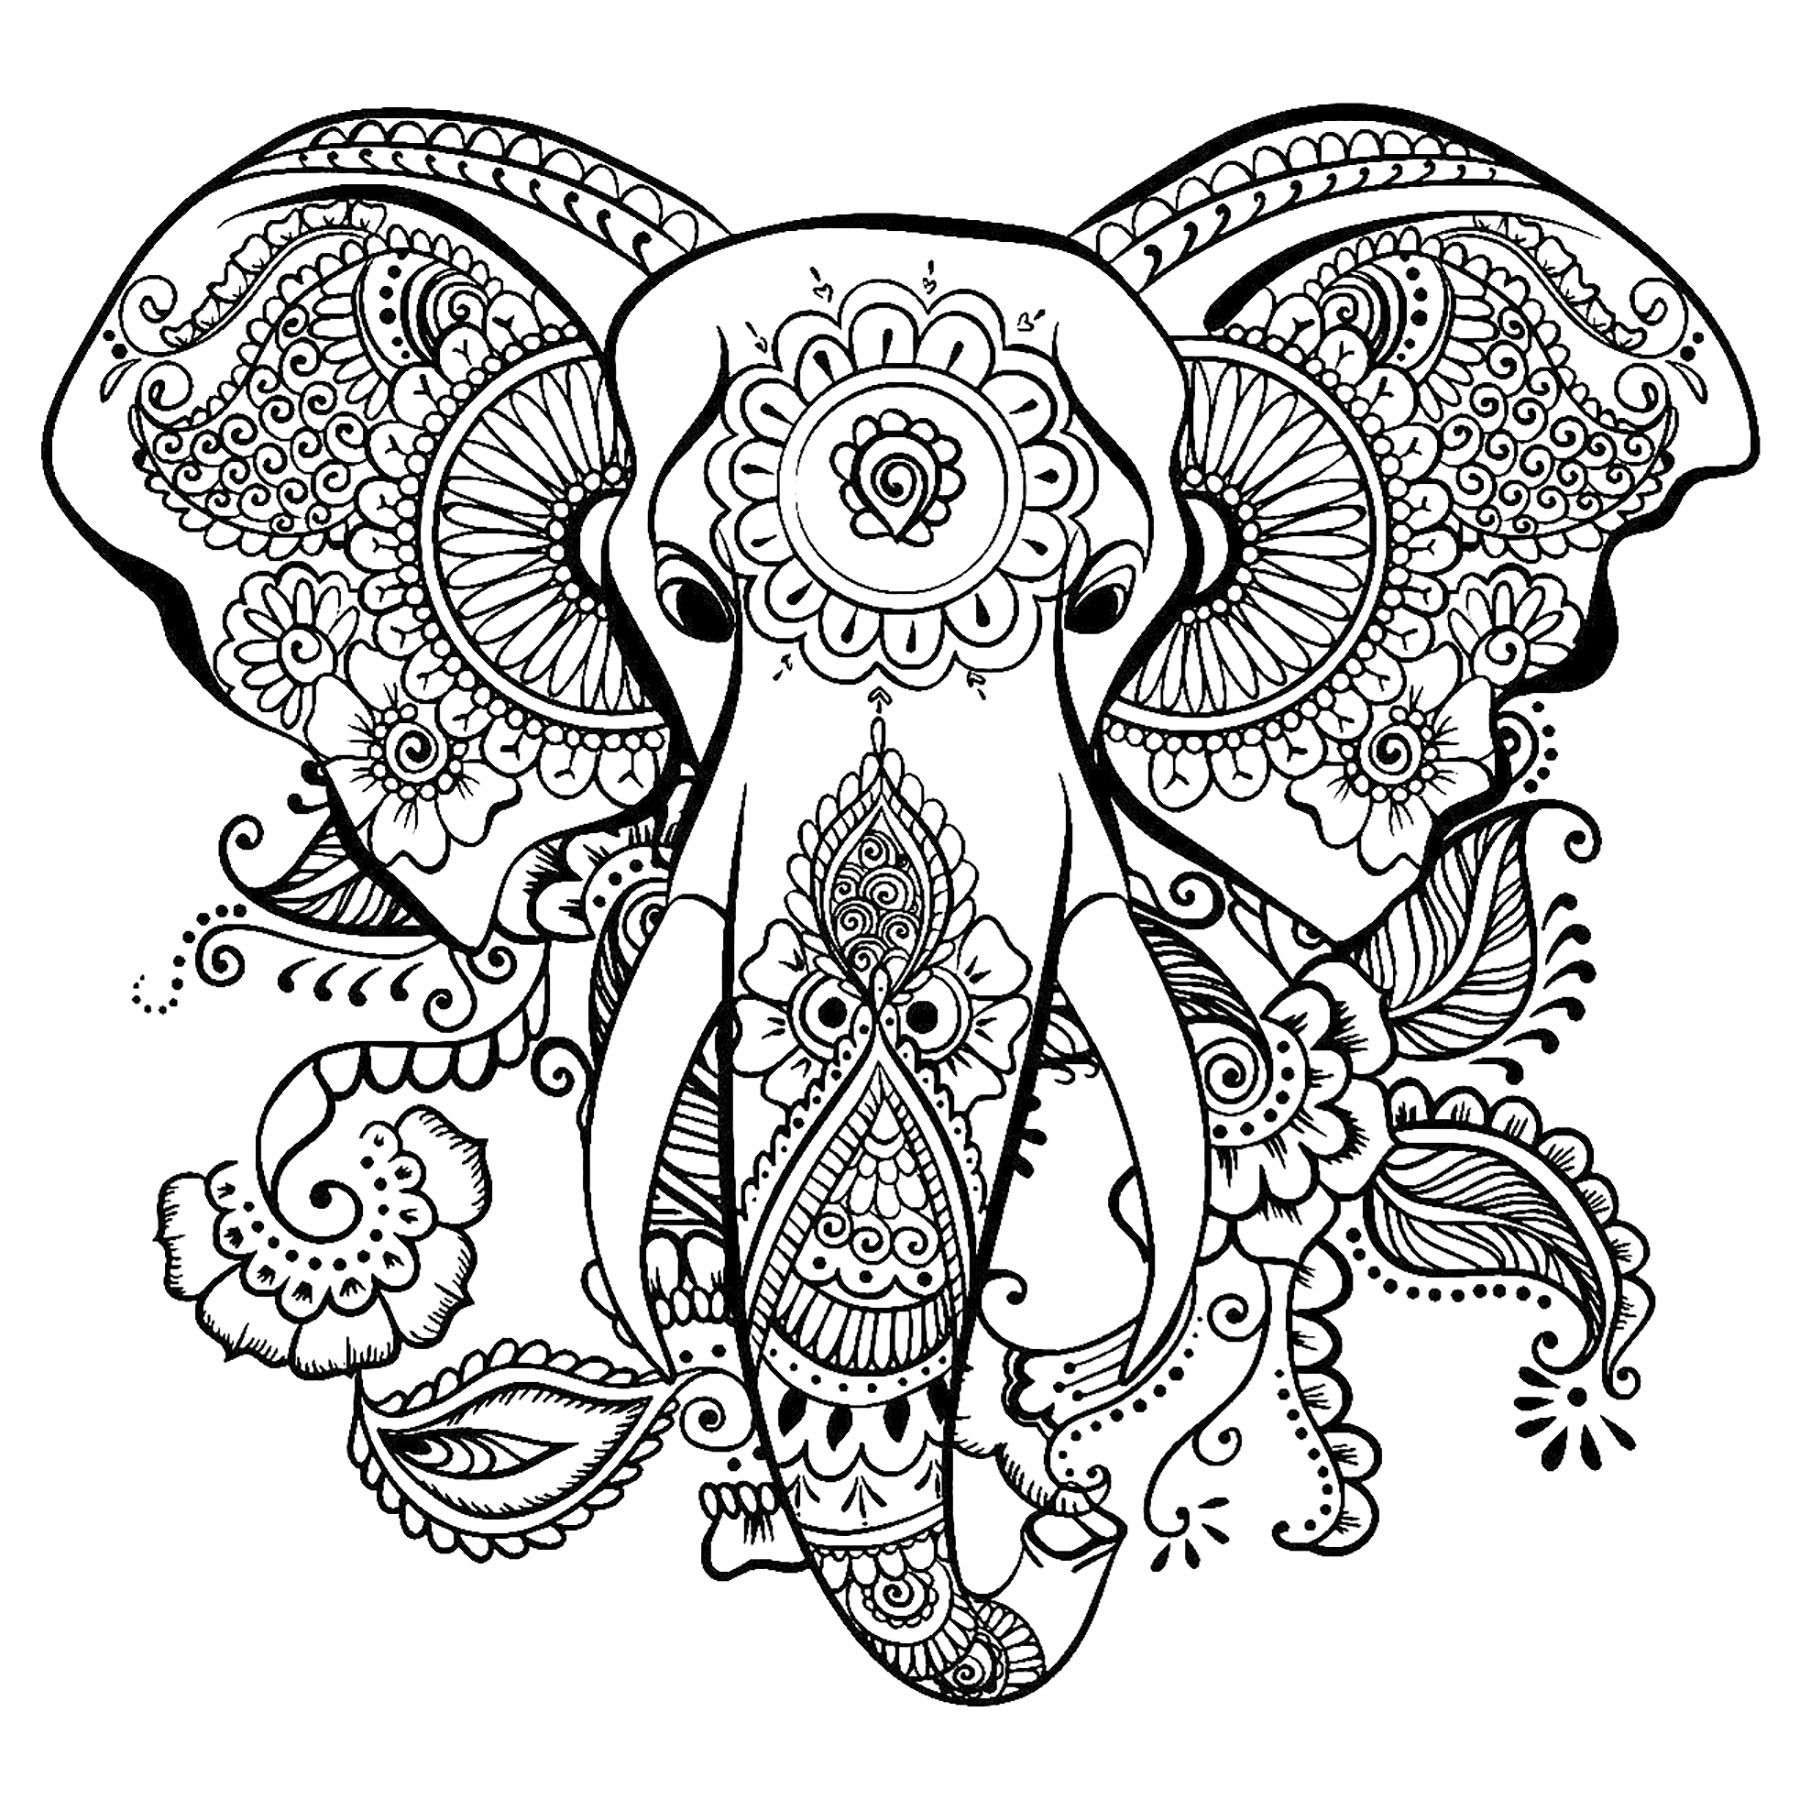 Baby Elephant Coloring Pages Sheet – instabuddy | 1800x1800